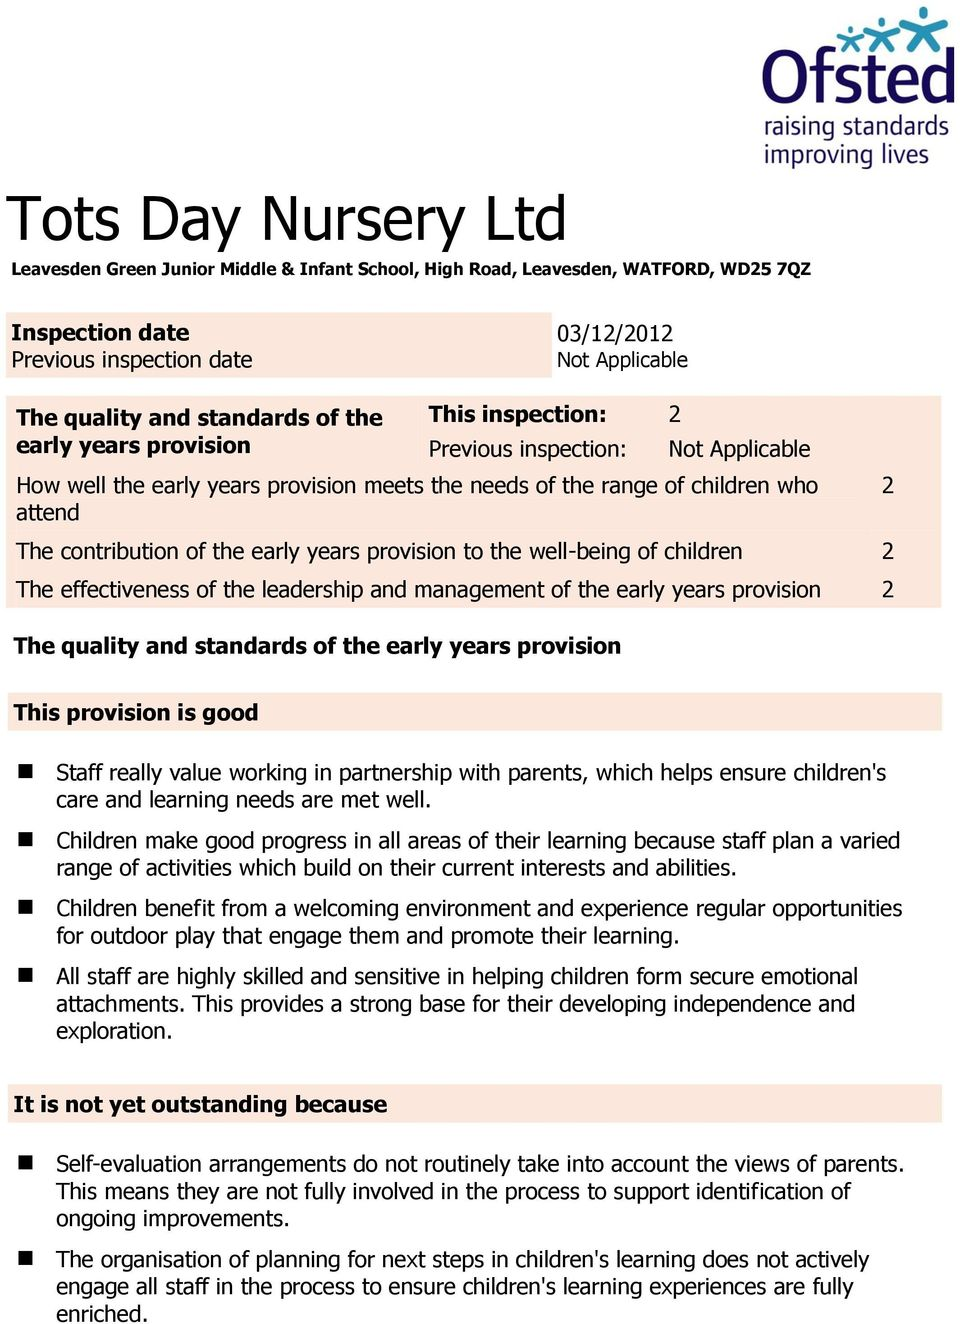 of the early years provision to the well-being of children 2 The effectiveness of the leadership and management of the early years provision 2 The quality and standards of the early years provision 2